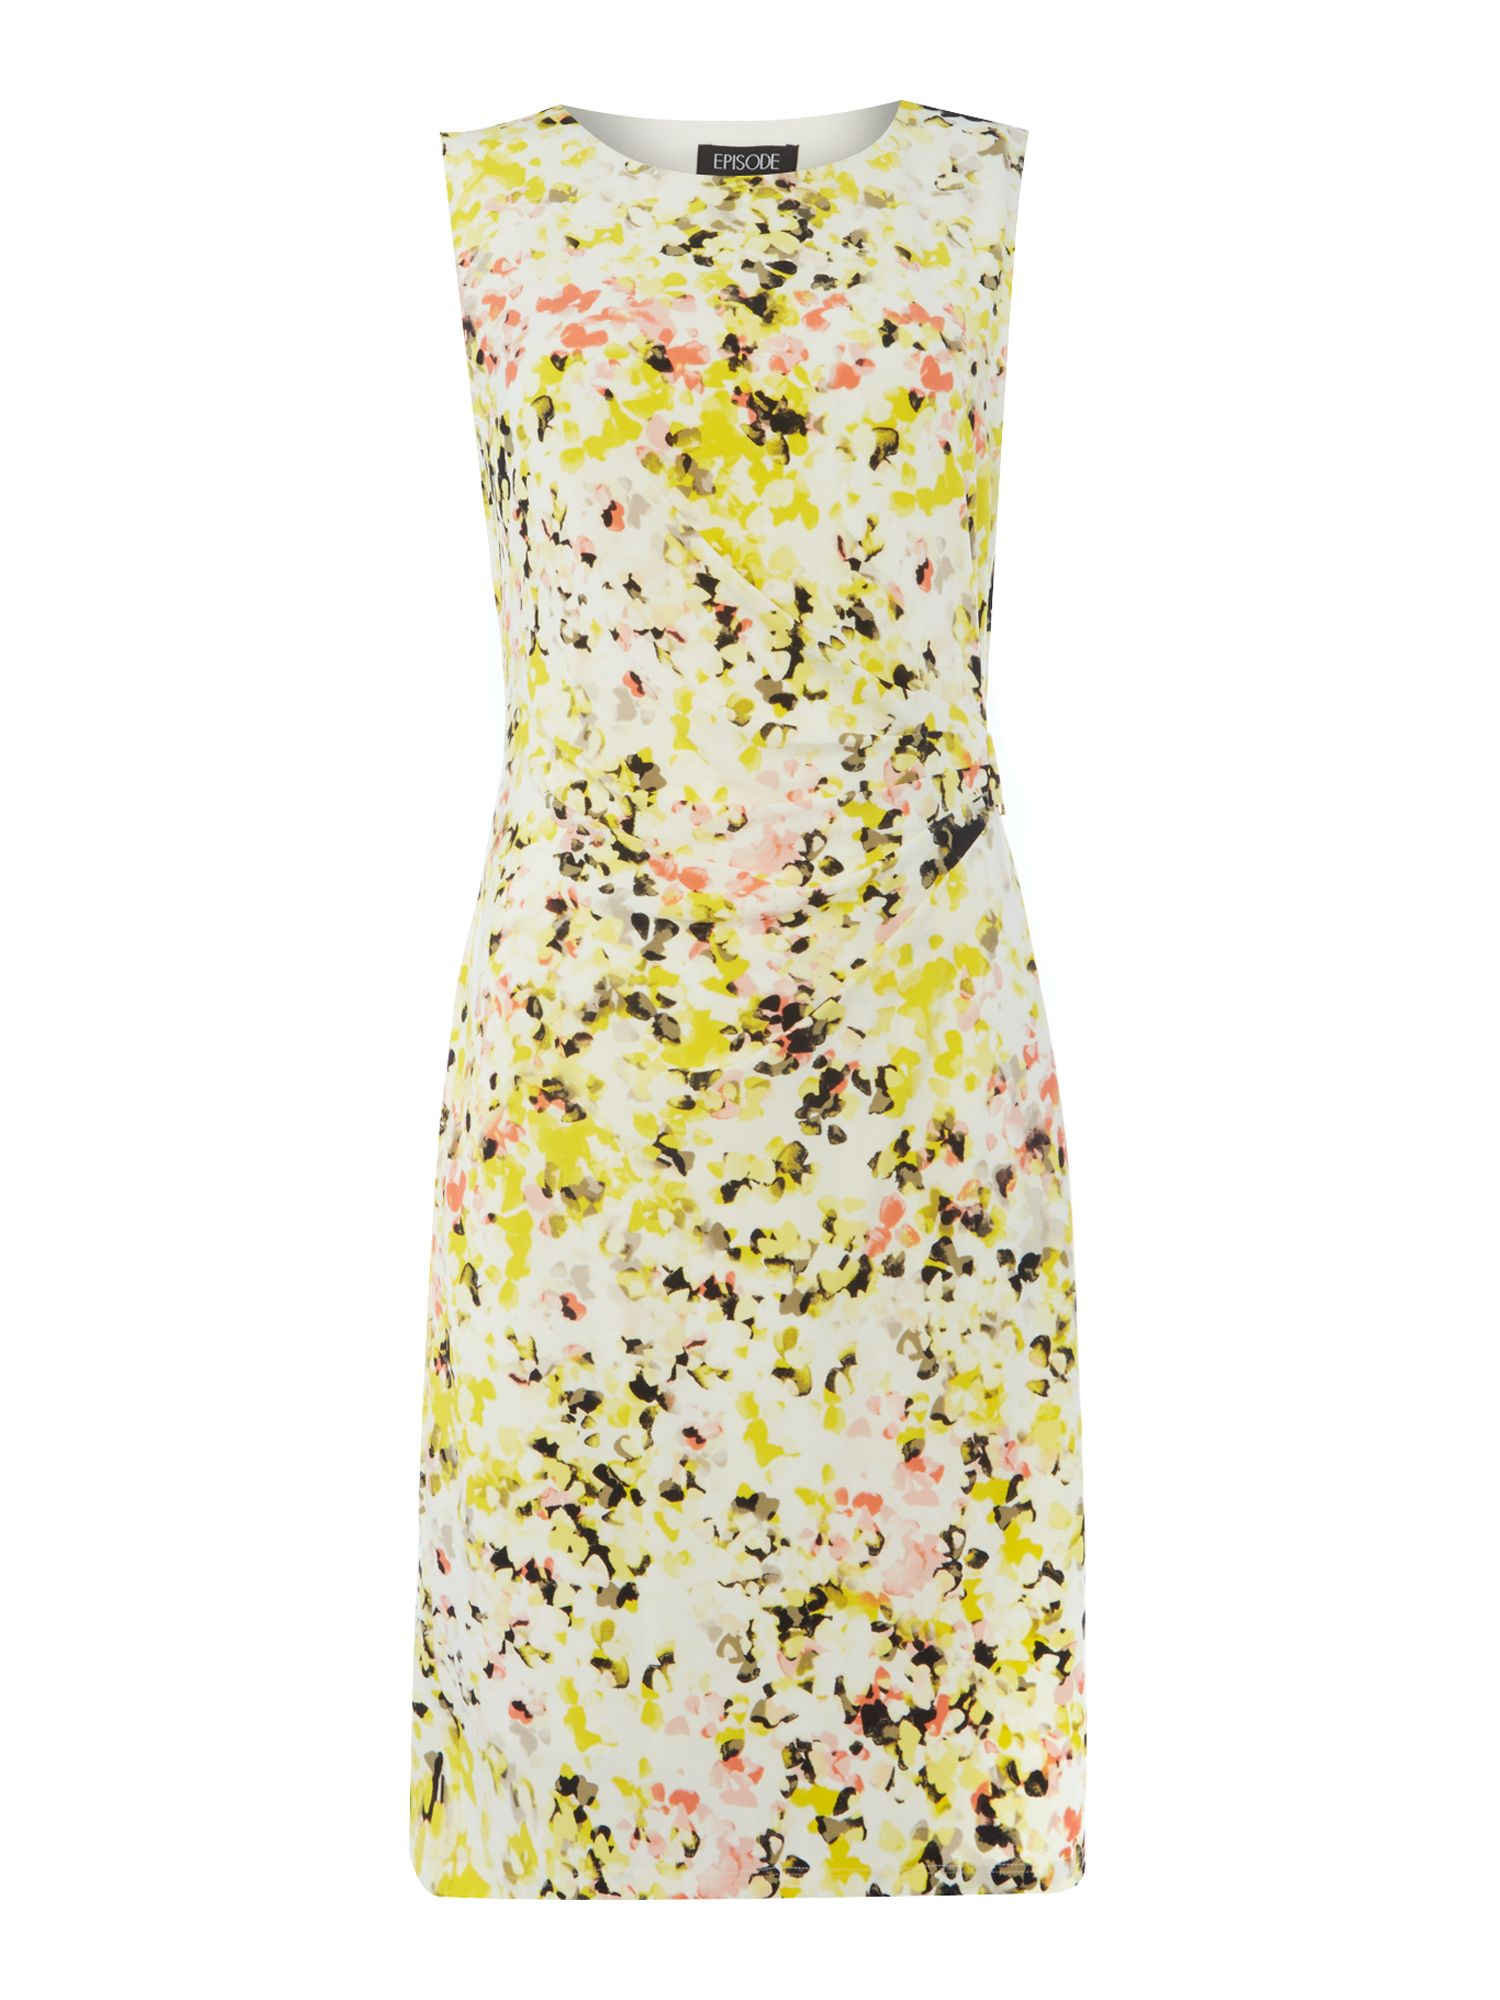 Episode Episode Floral print shift dress, Multi-Coloured